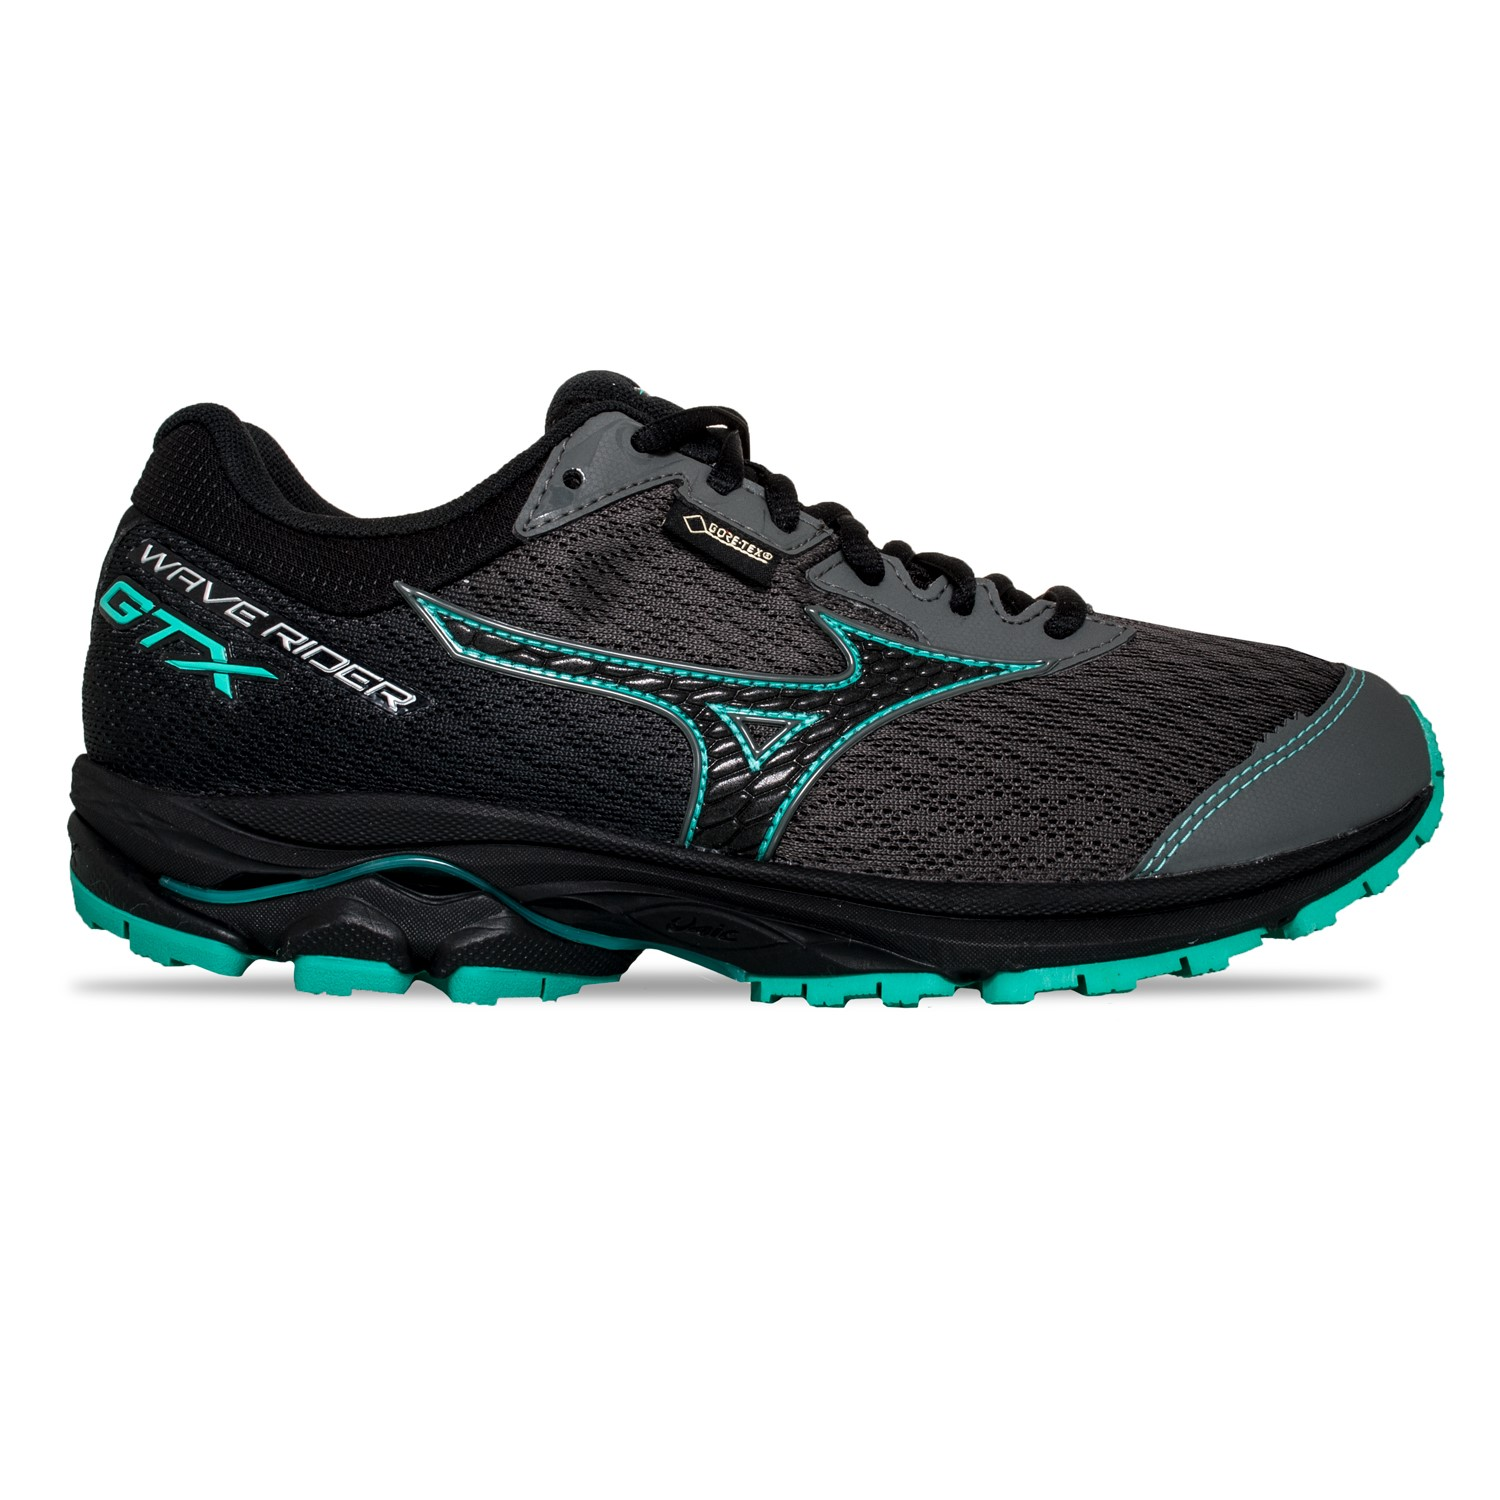 check out f6469 7f123 Mizuno Wave Rider 22 GTX - Womens Trail Running Shoes -  Gunmetal Black Billiard